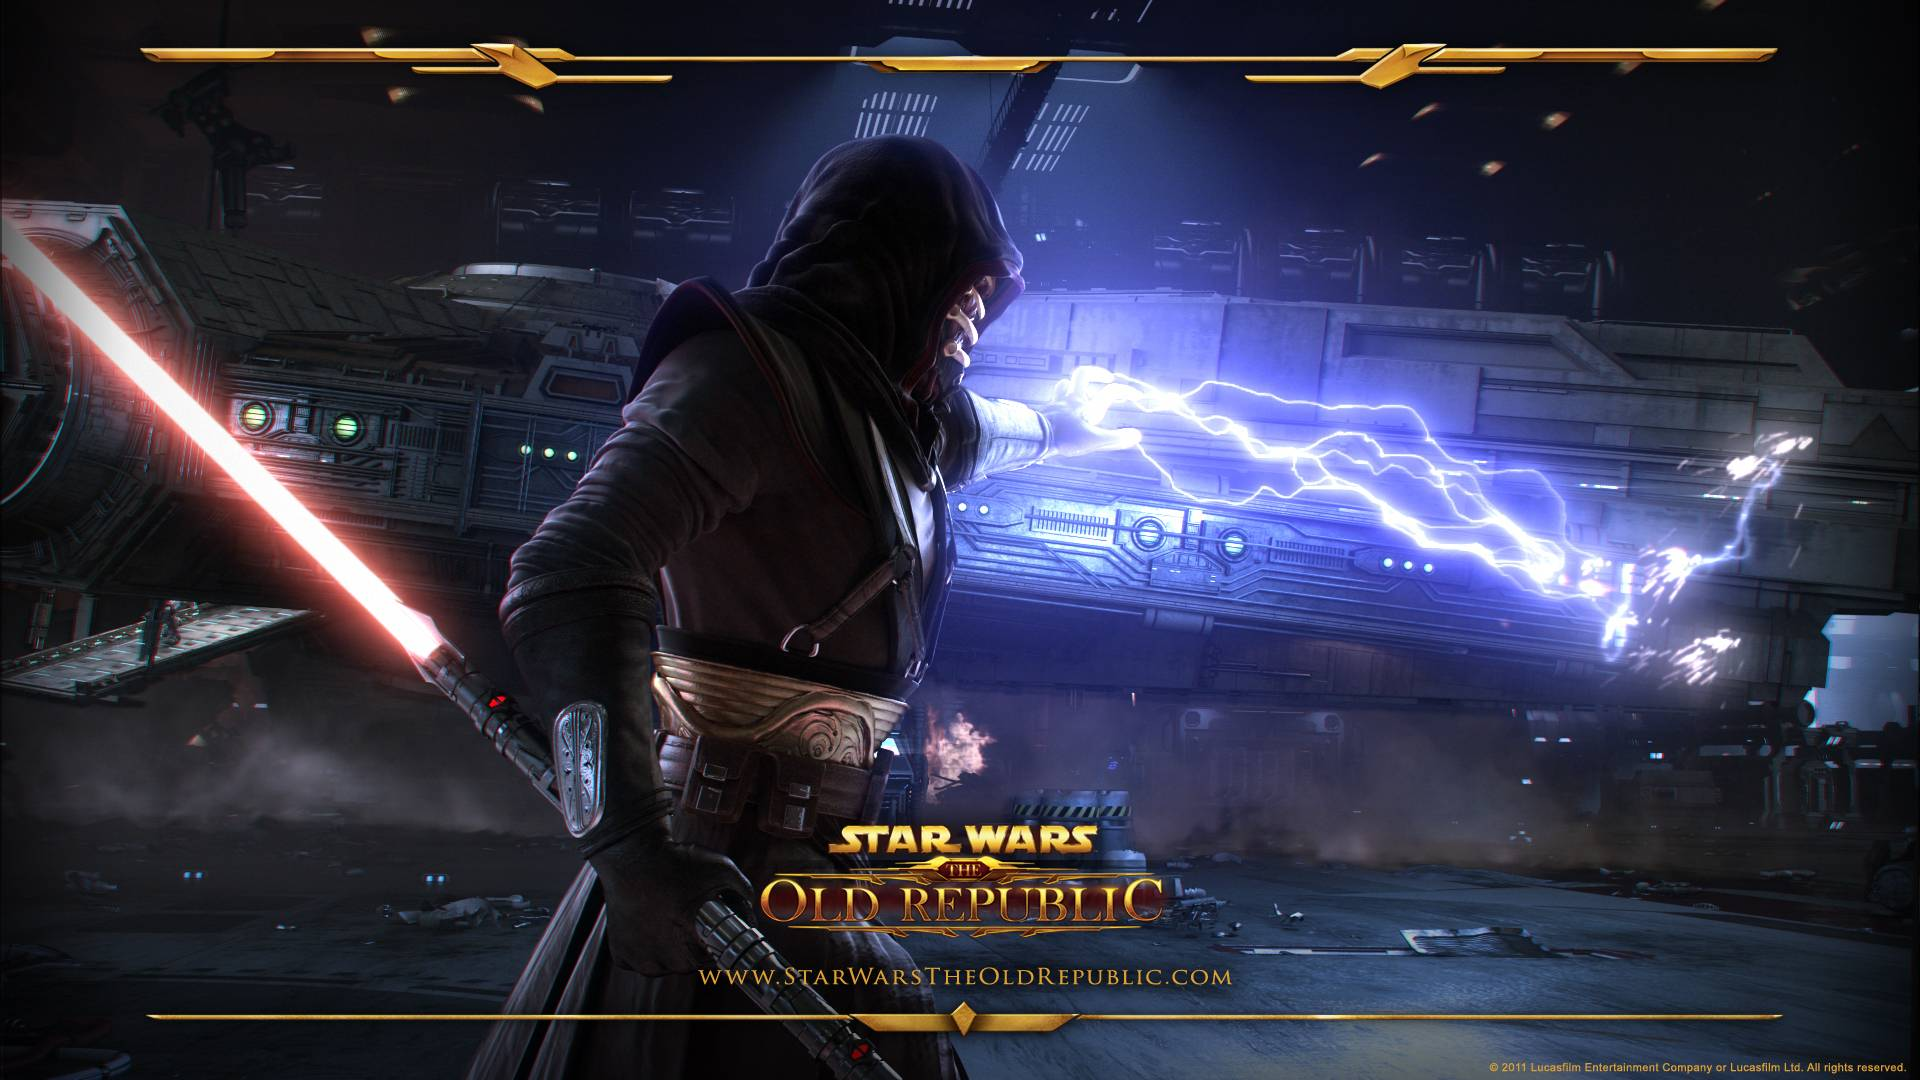 Swtor Wallpapers 1920x1080 Wallpaper Cave